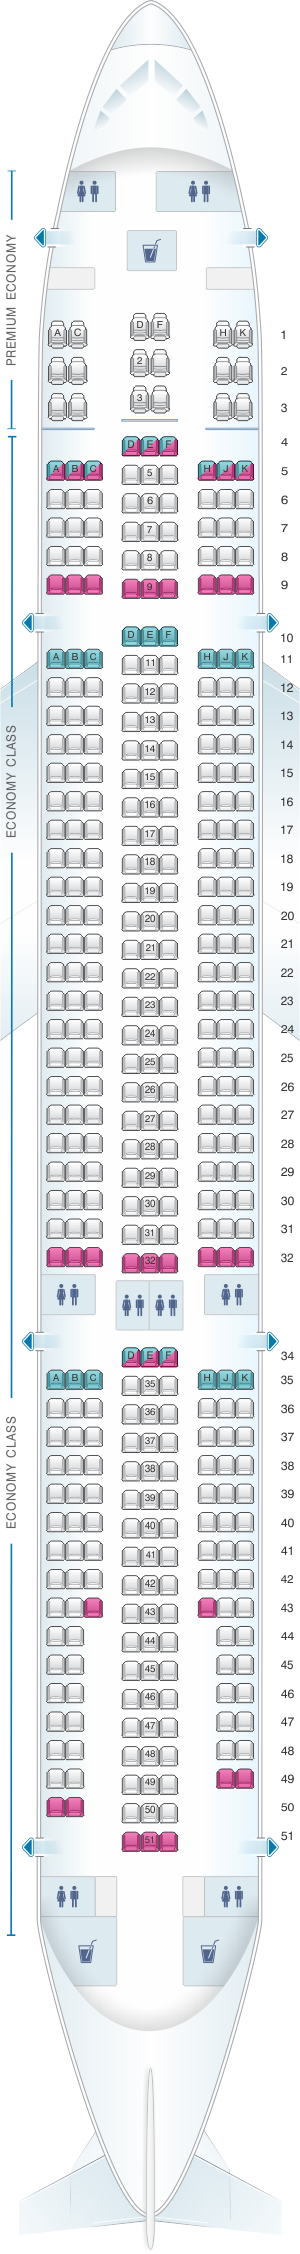 Seat map for Lion Air Airbus A330 300